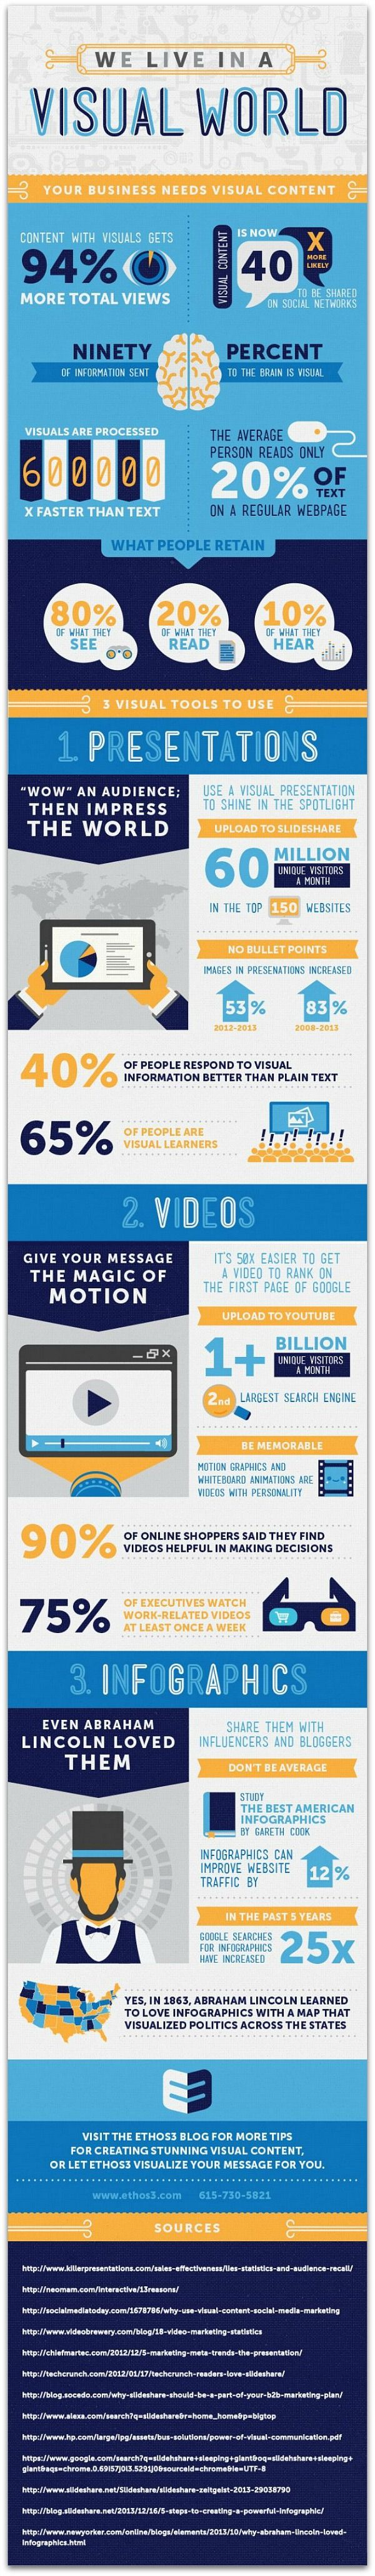 We Live in a Visual World - Your Business Needs Visual Content [Infographic]